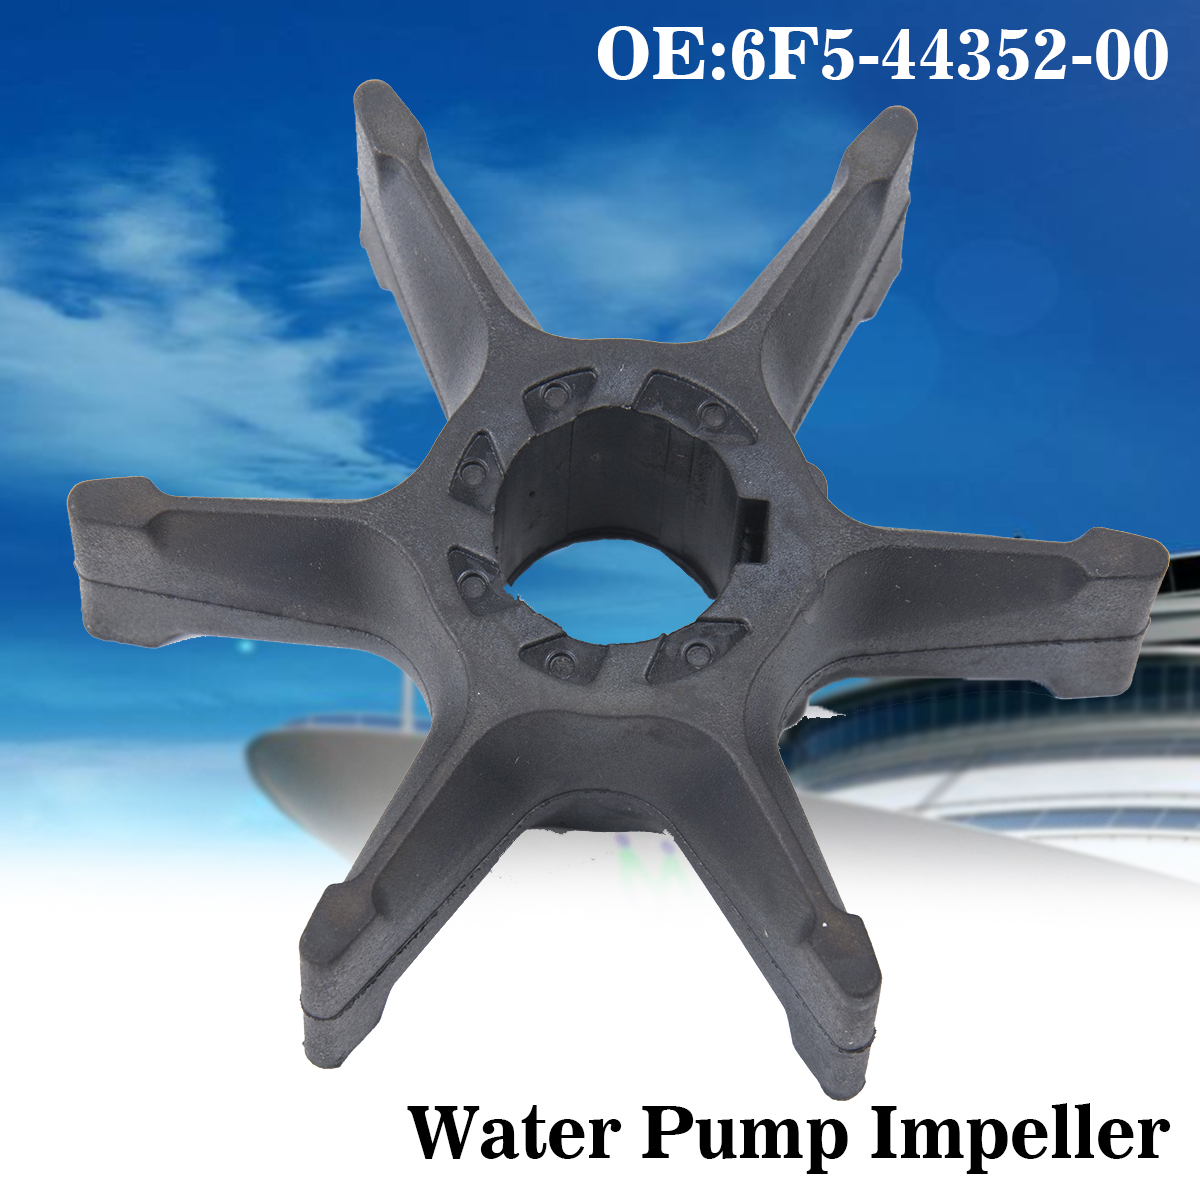 Boat Outboard Water Pump Impeller Repalcement for Yamaha 40hp 6F5-44352-01-00